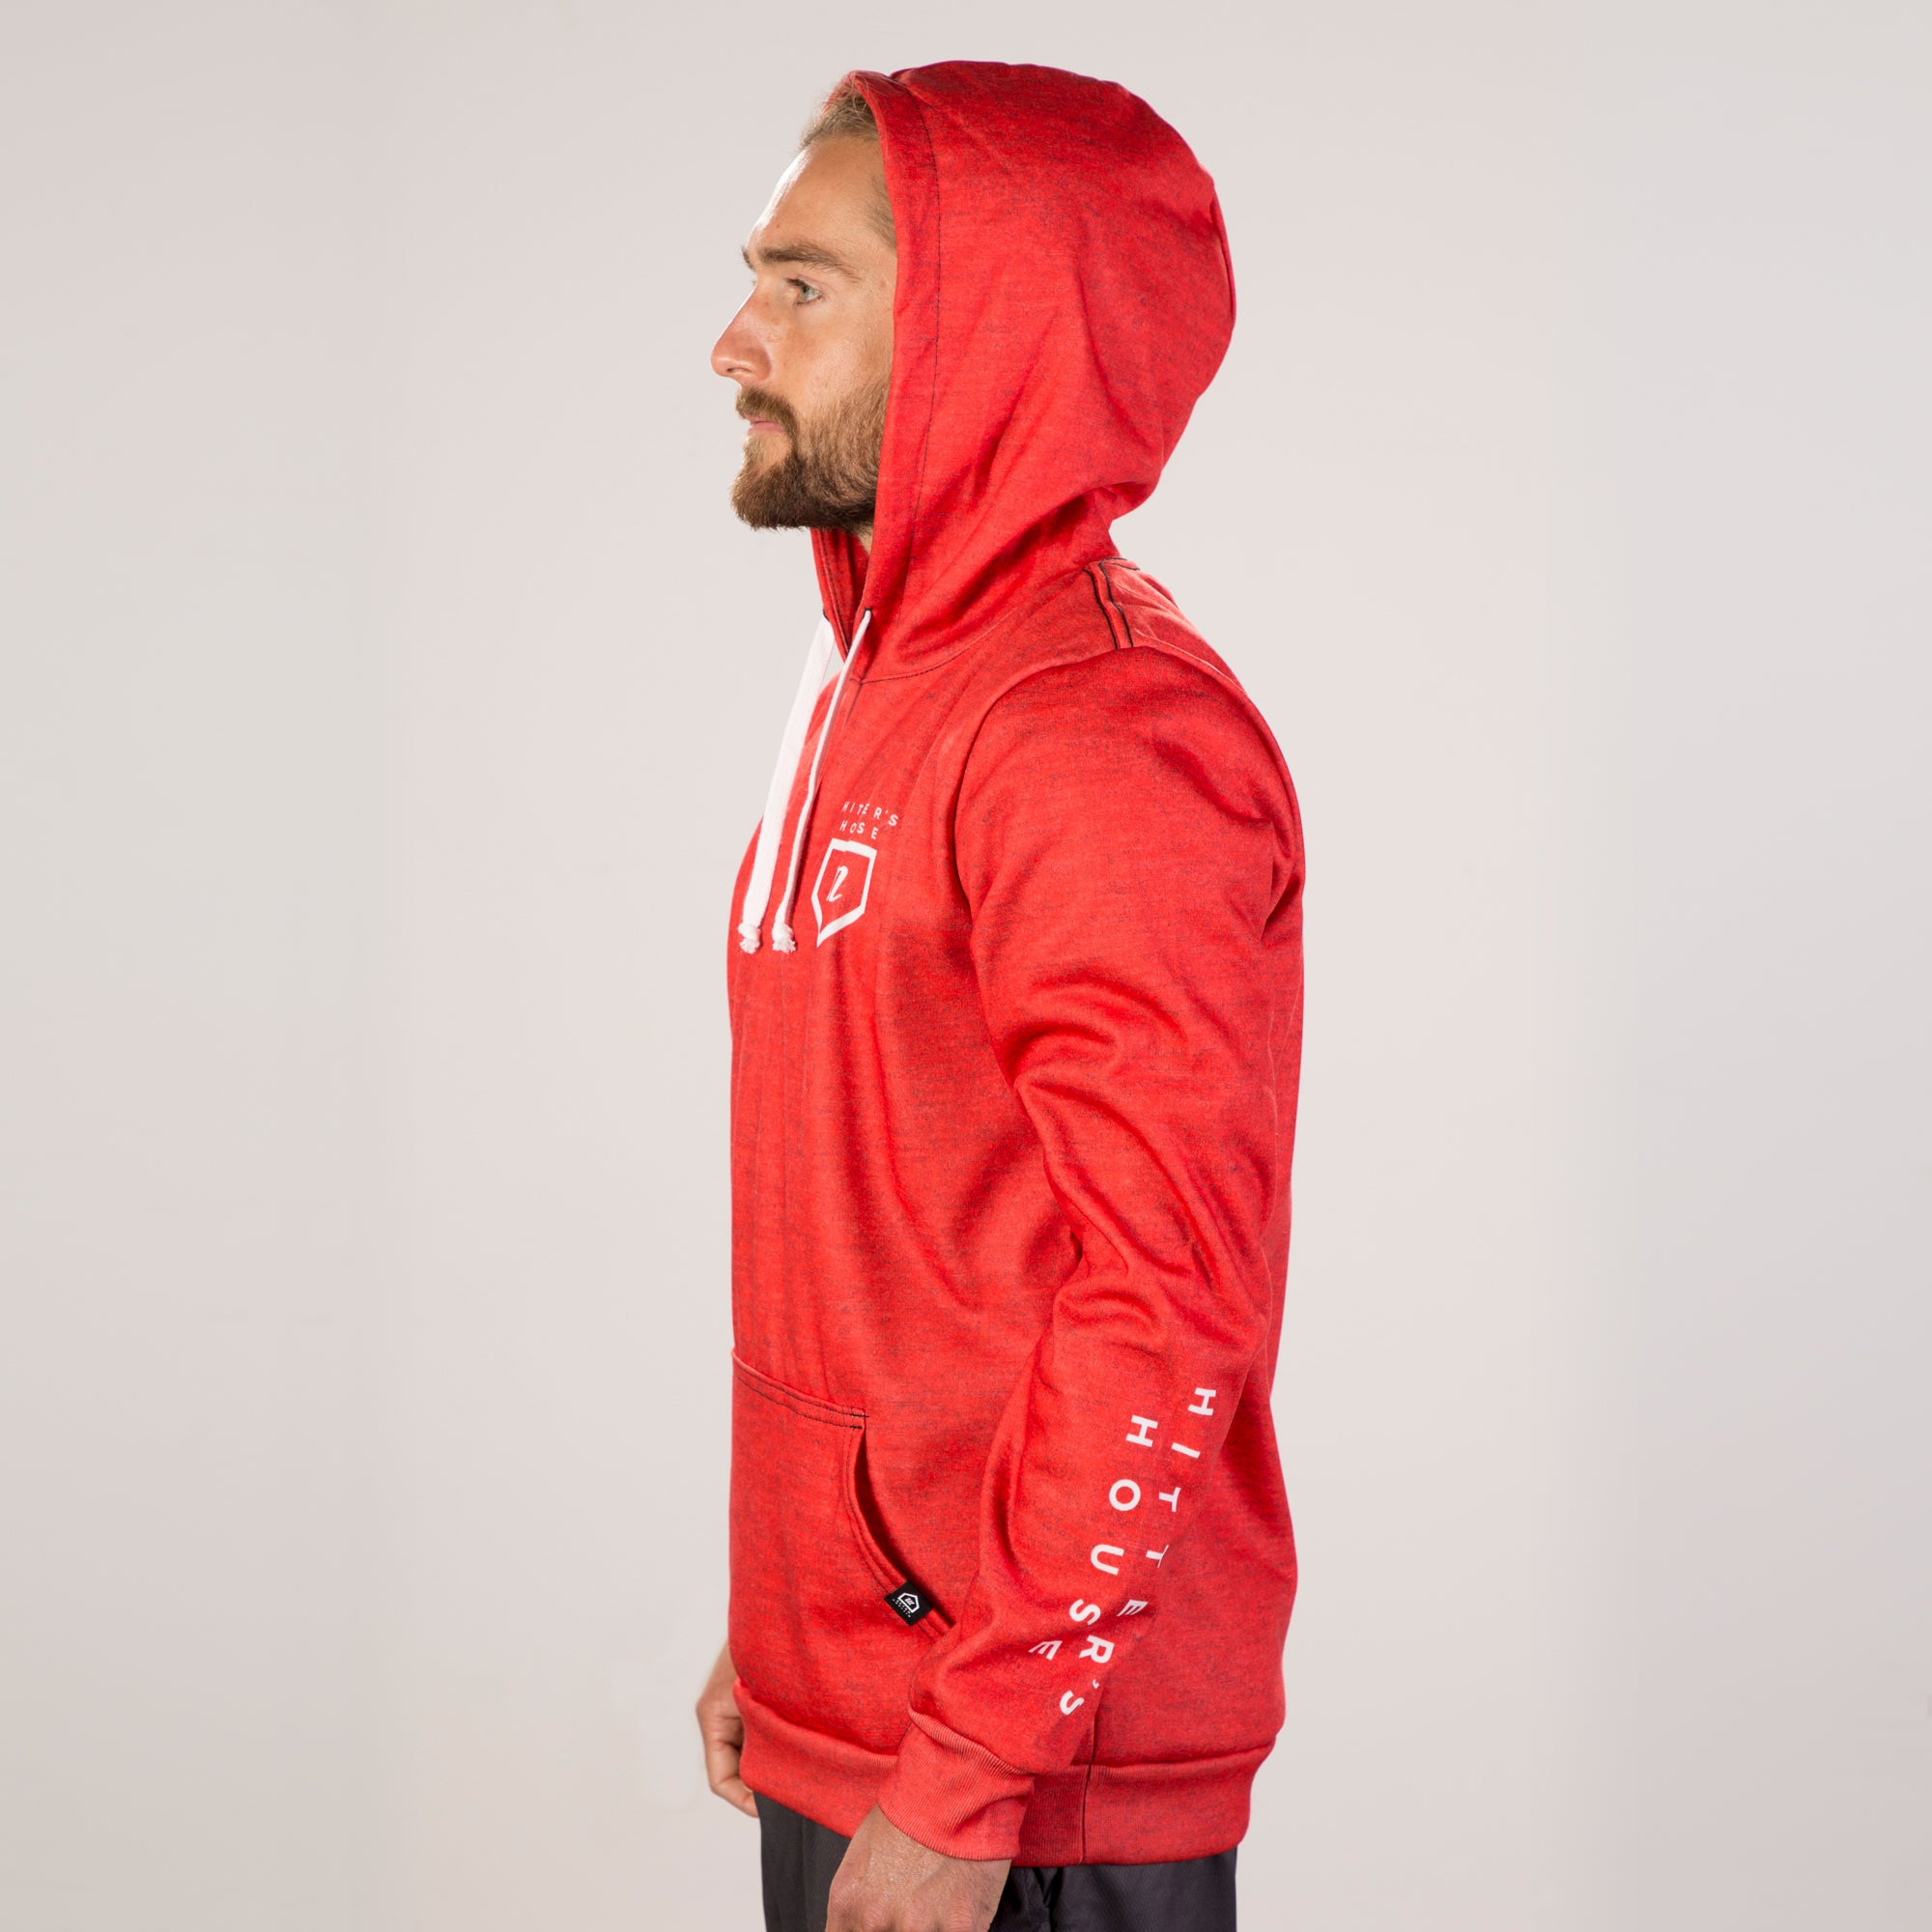 HH Tour Hoodie - Heather Red